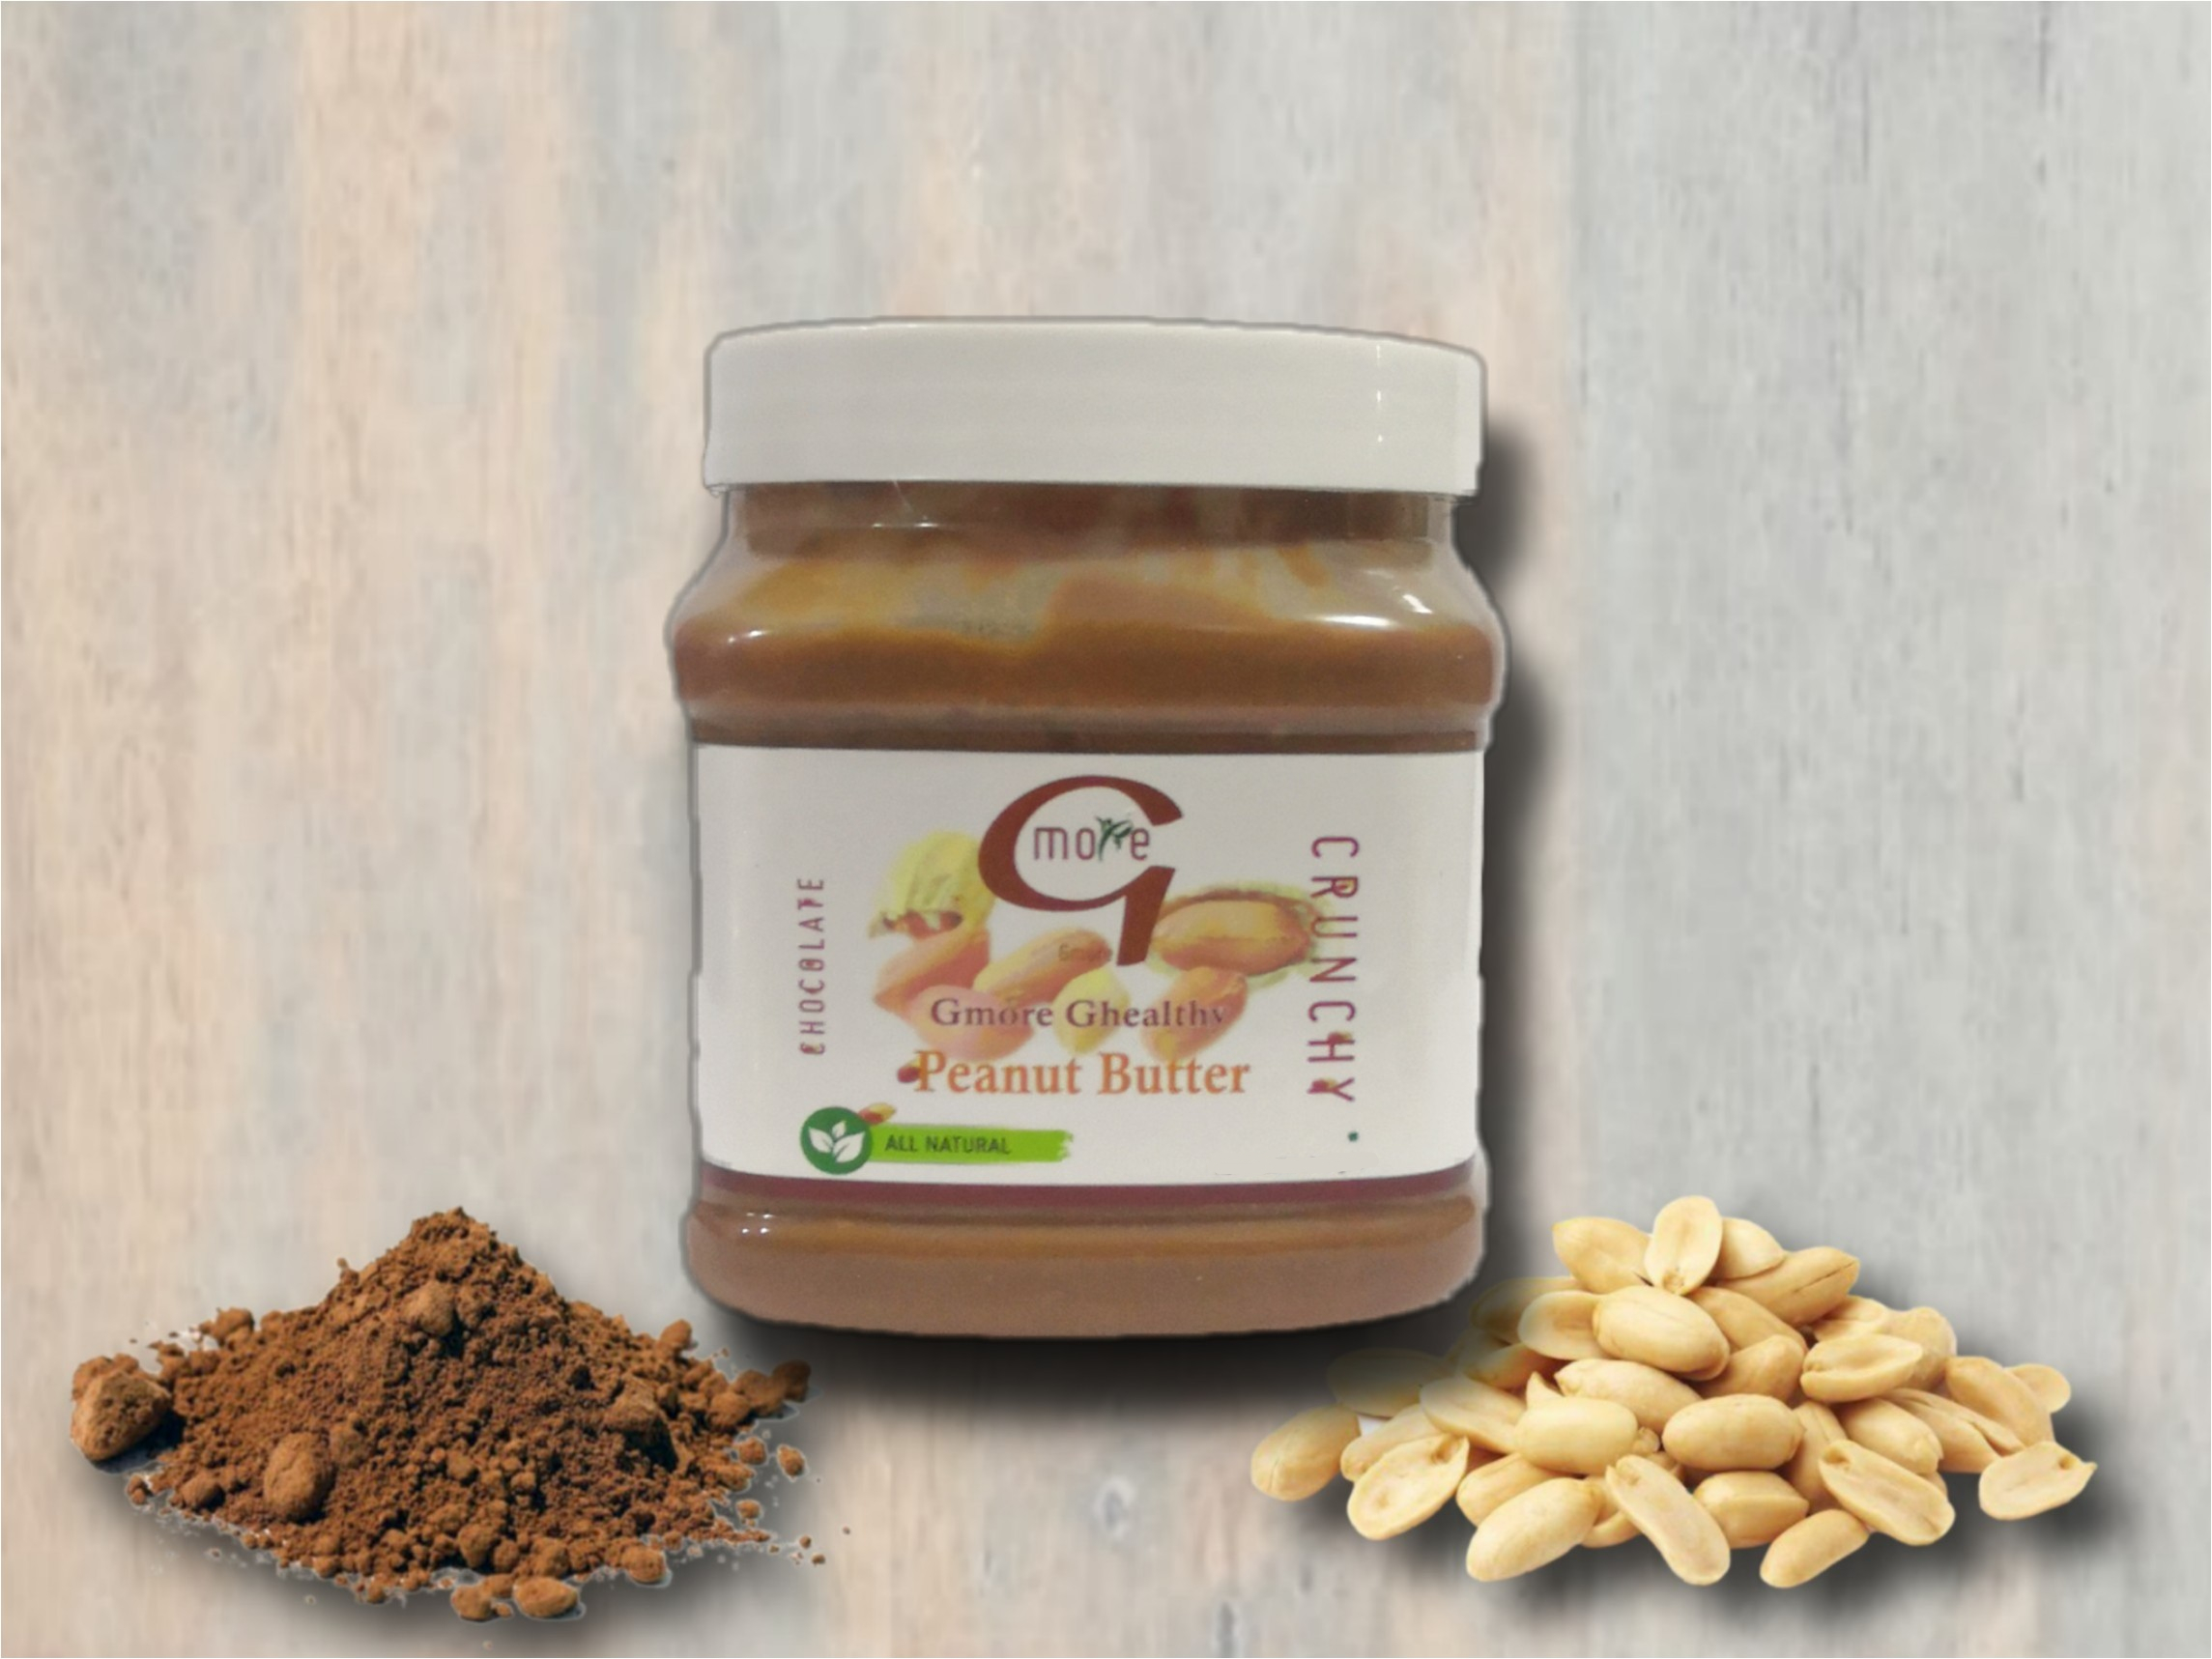 chocolate-crunchy-peanut-butter-450g